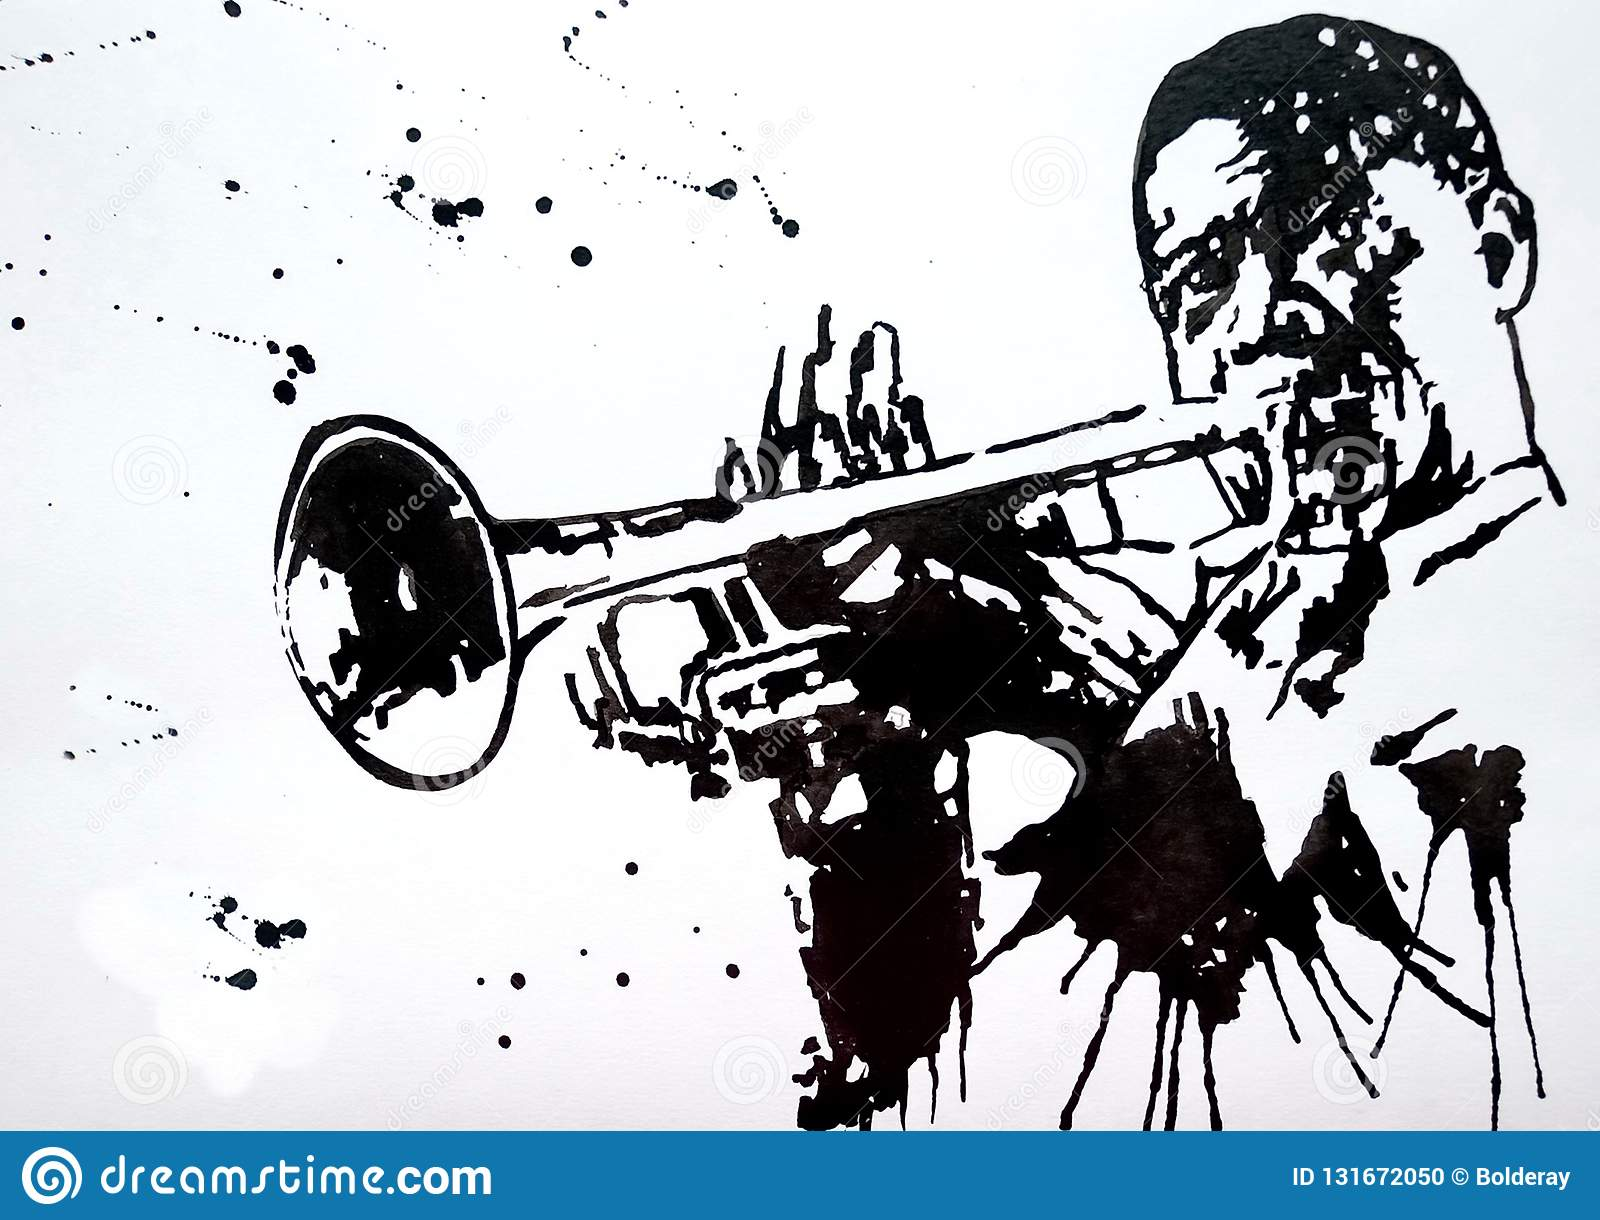 Trumpeter Jazz Band Jazz Swing Orchestra Silhouettes